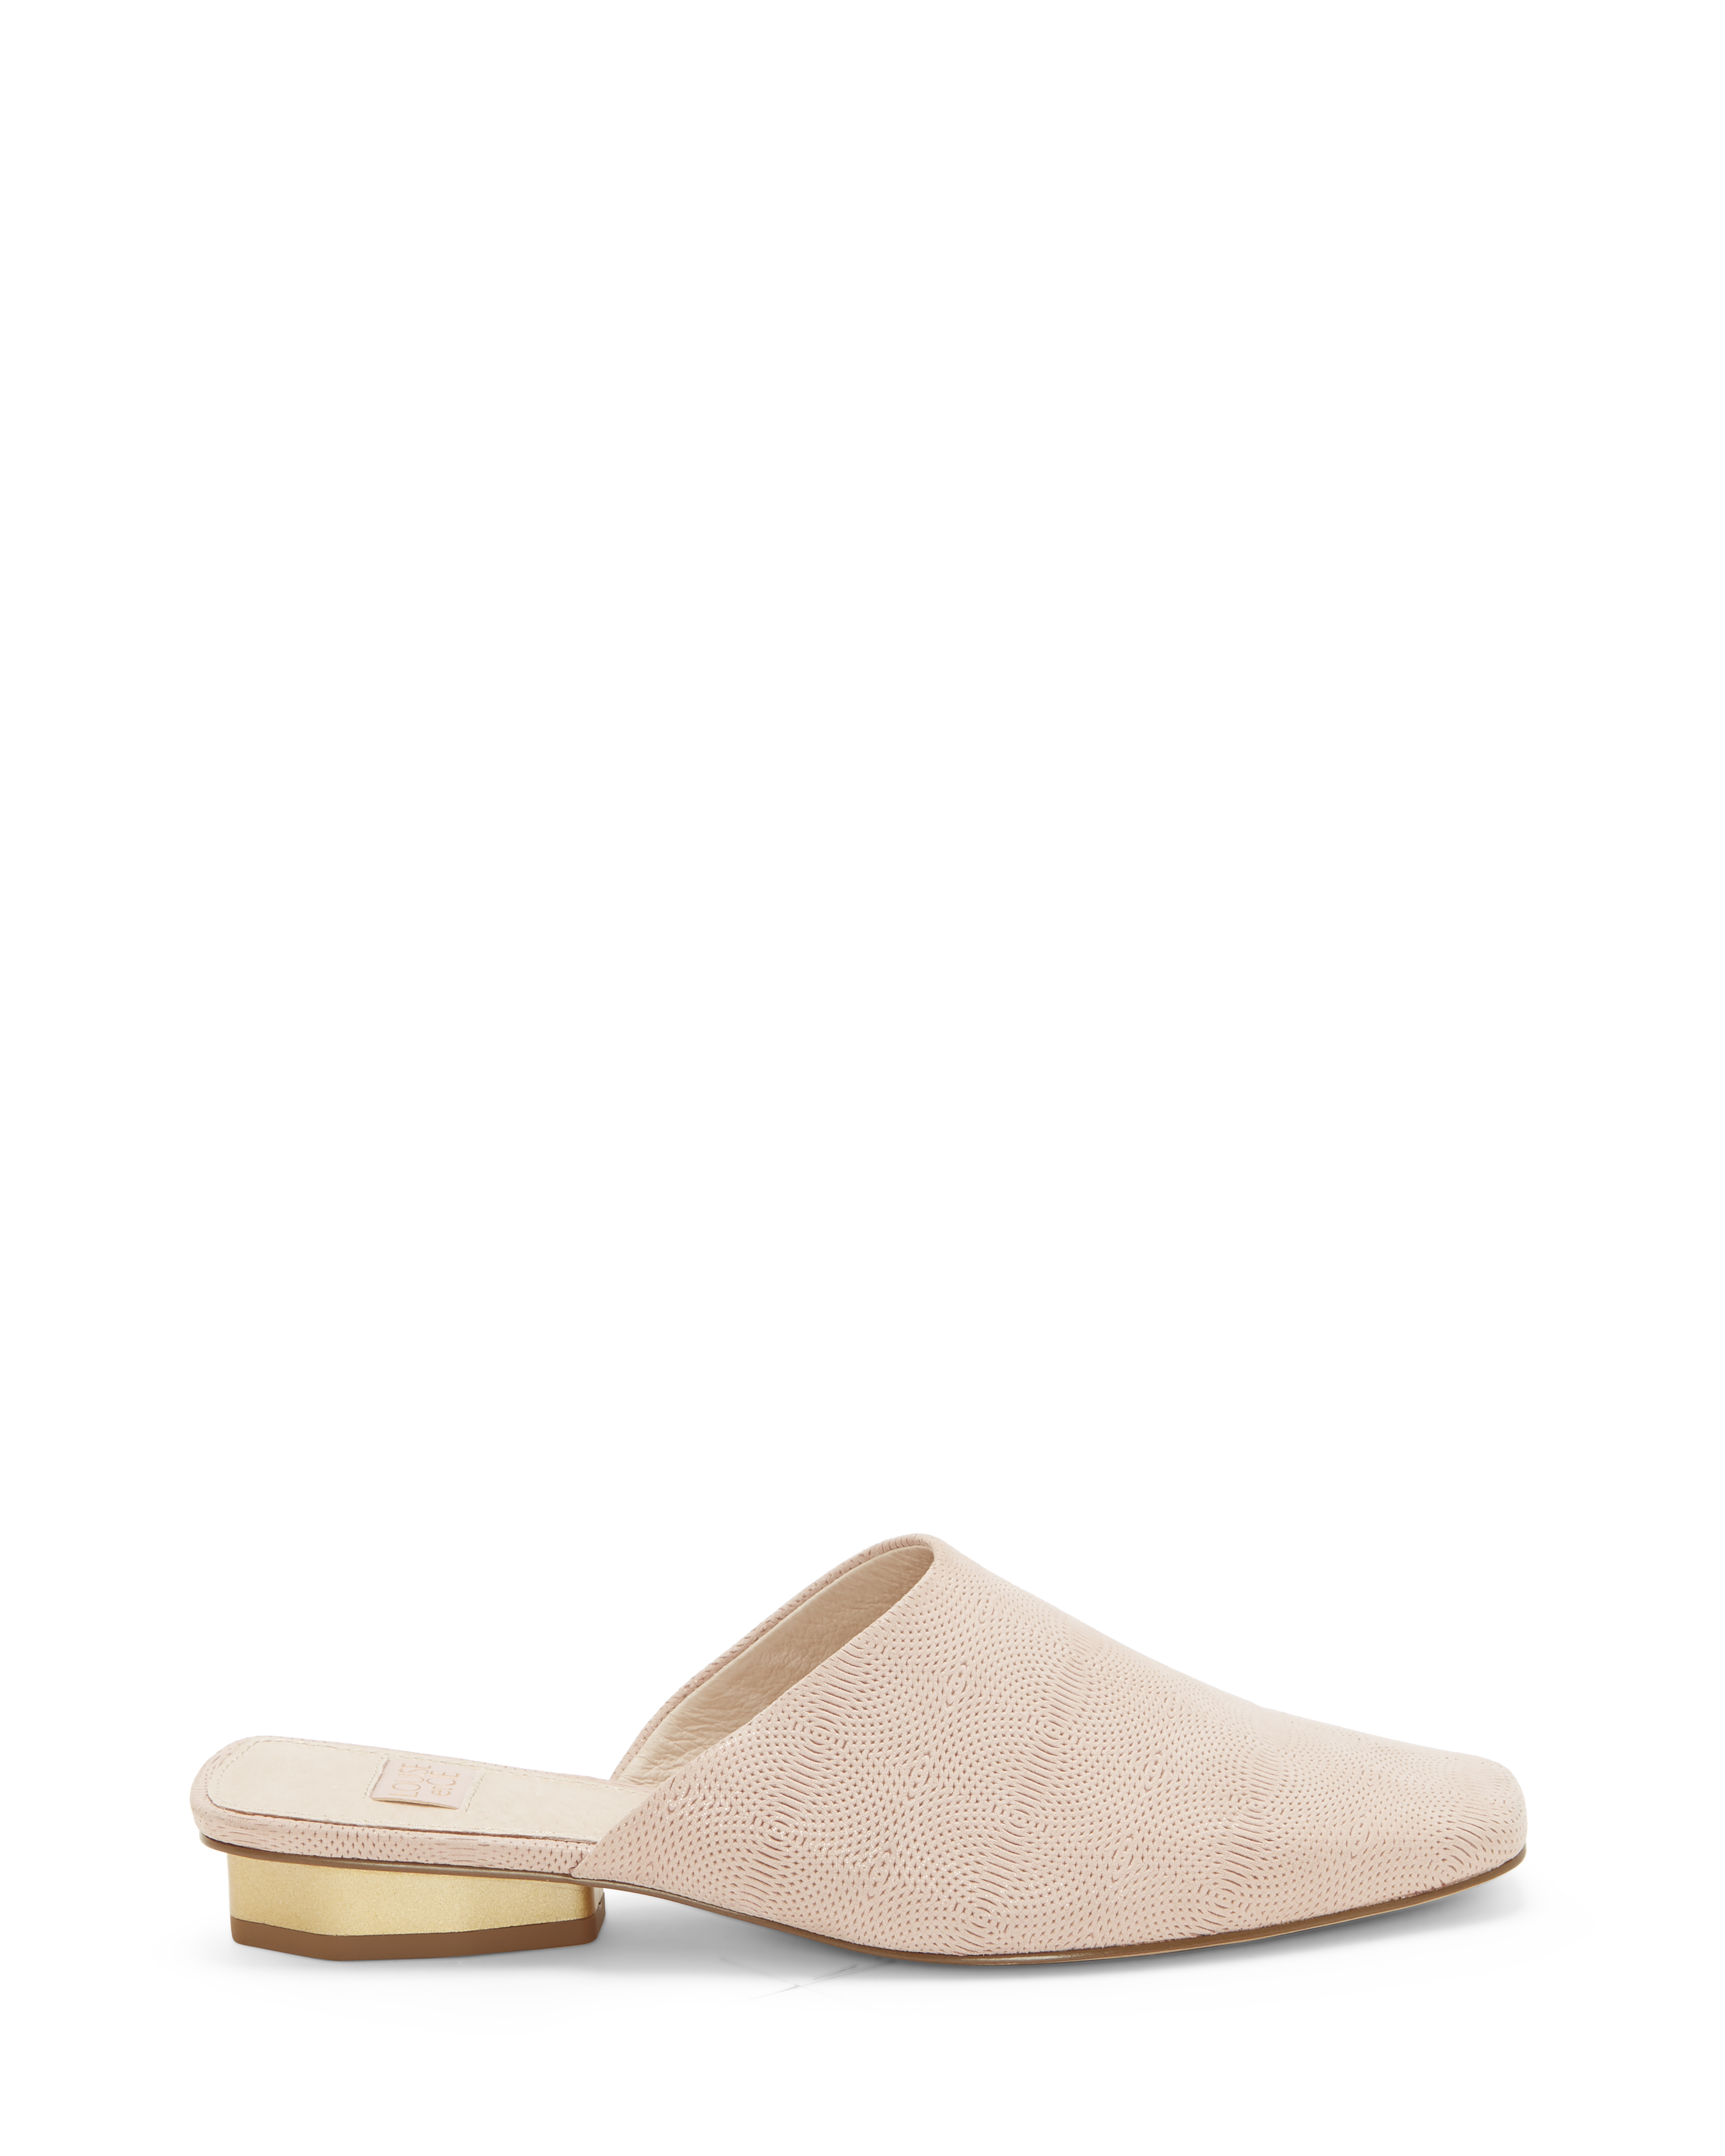 Louise Et Cie Women's Coolia Square Toe Mules Shoes Size 5.5 Silky Leather Light Pink